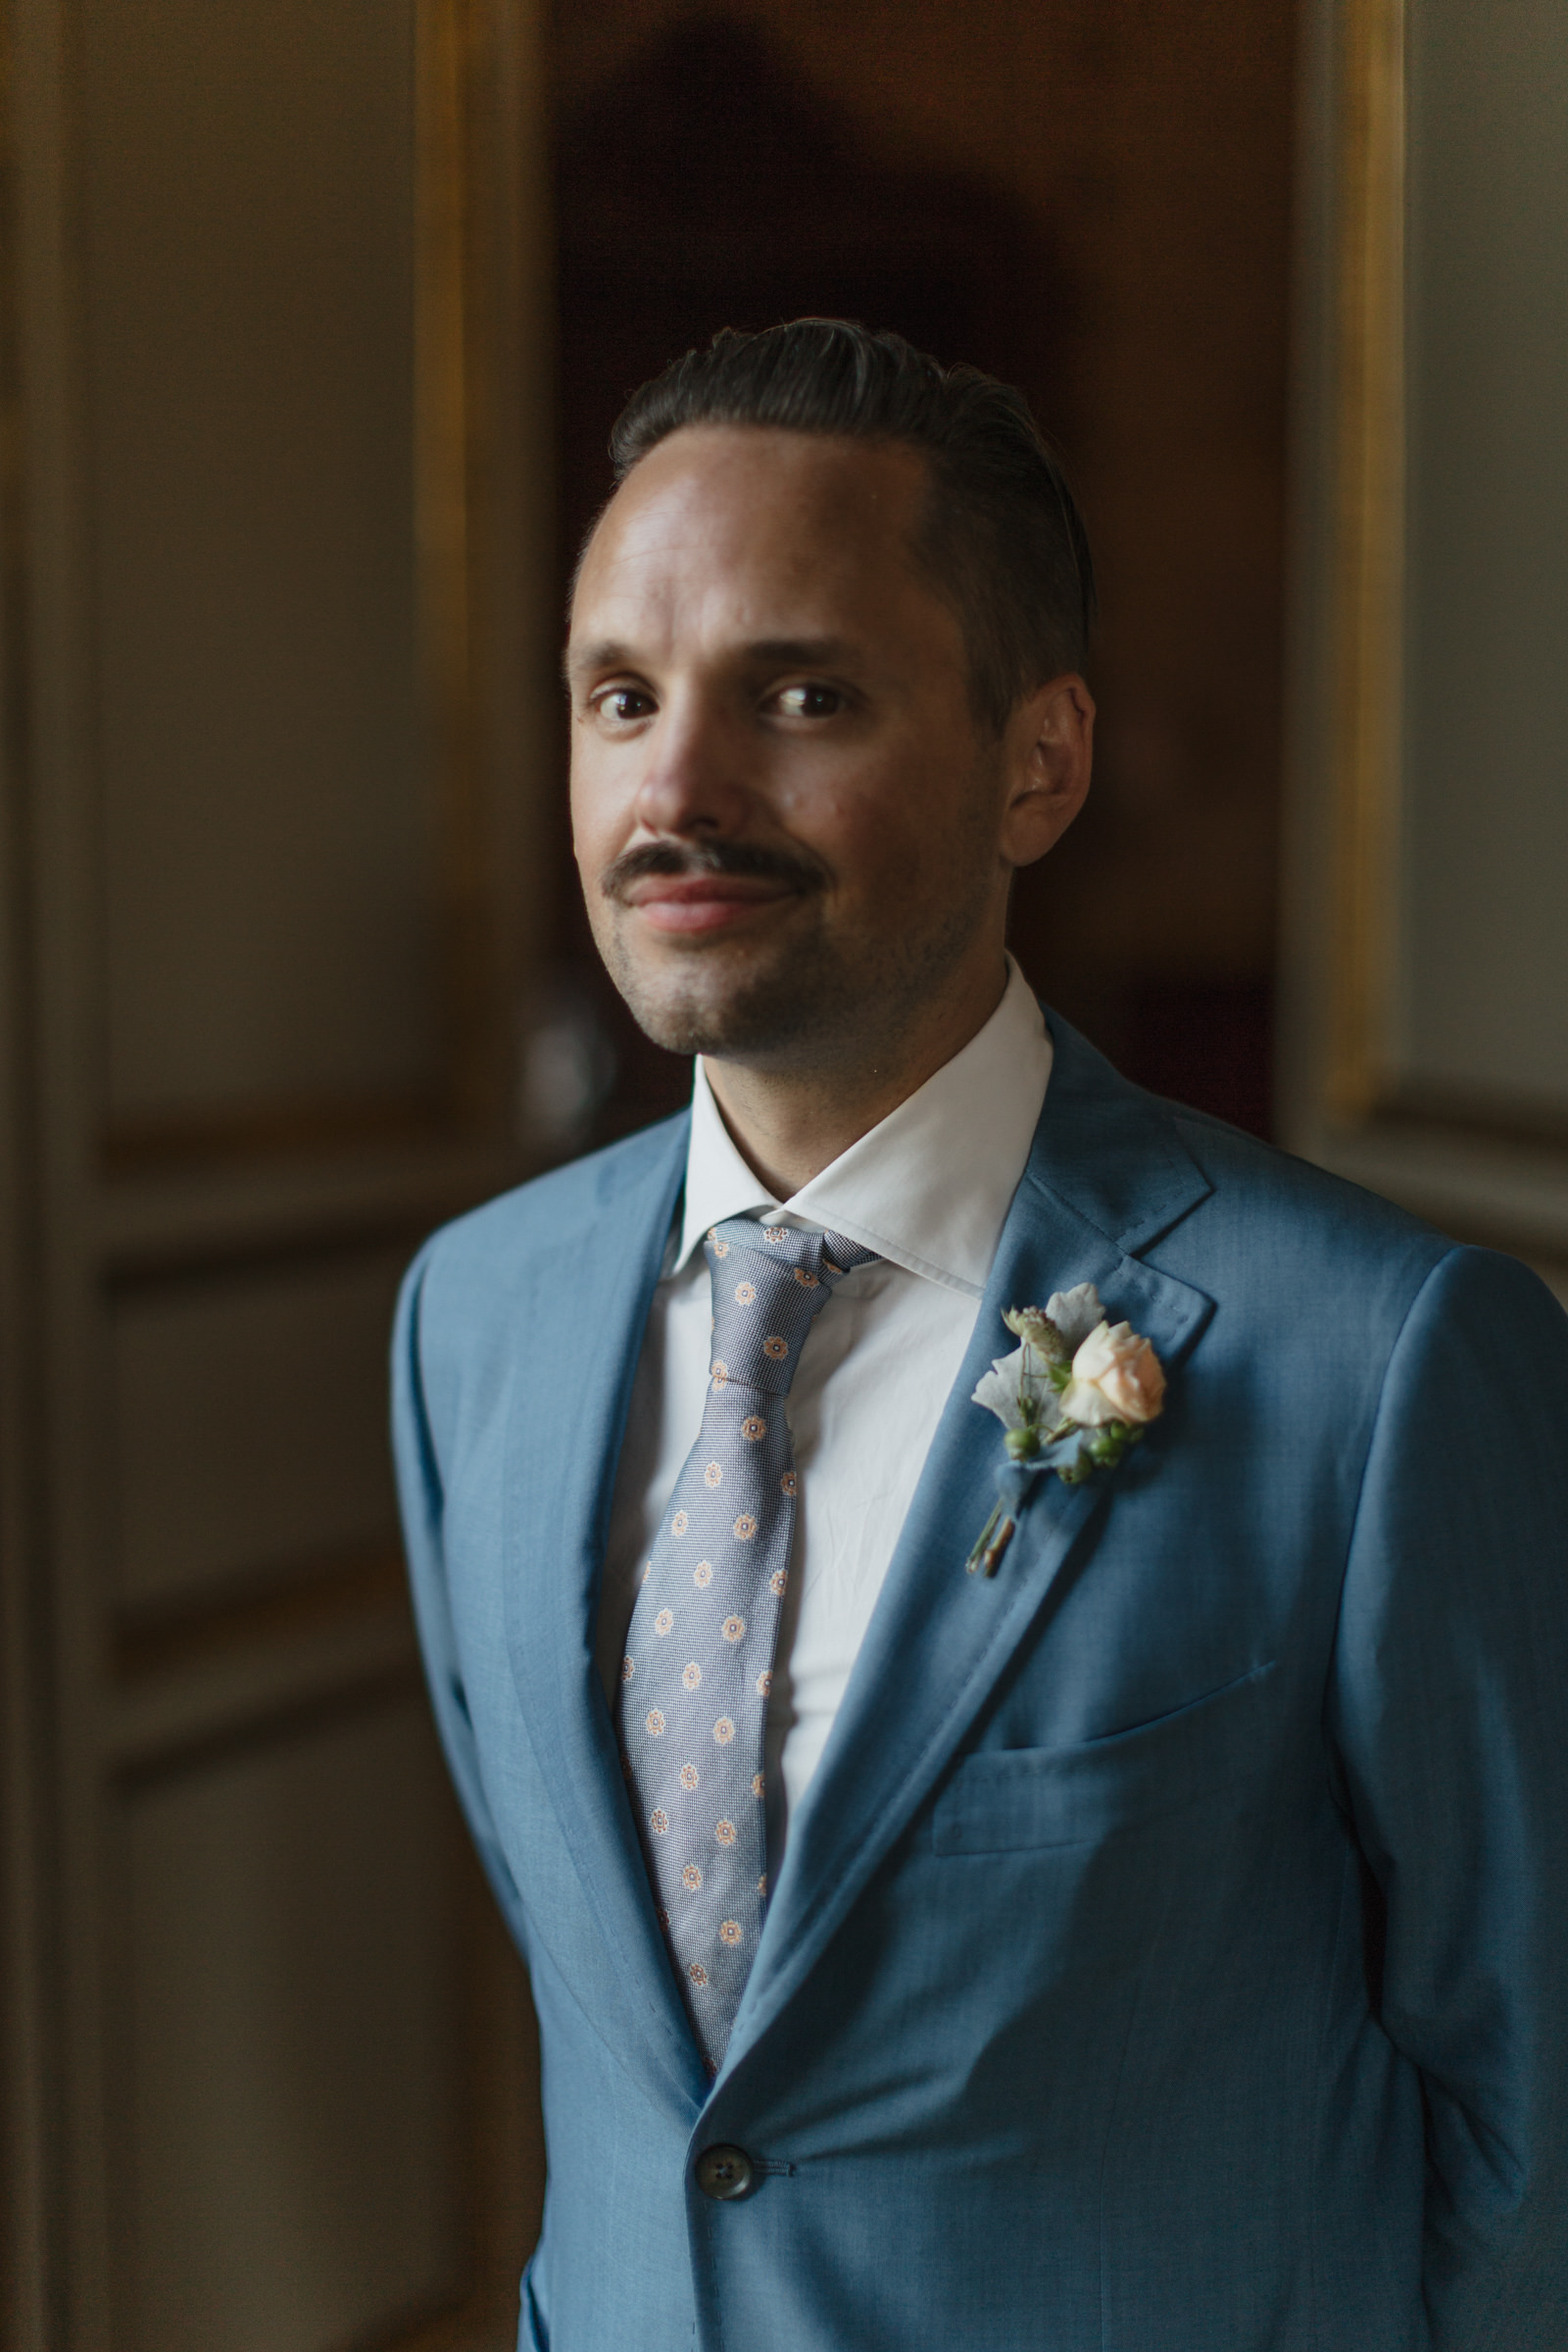 Portrait of the groom at Villa Cora